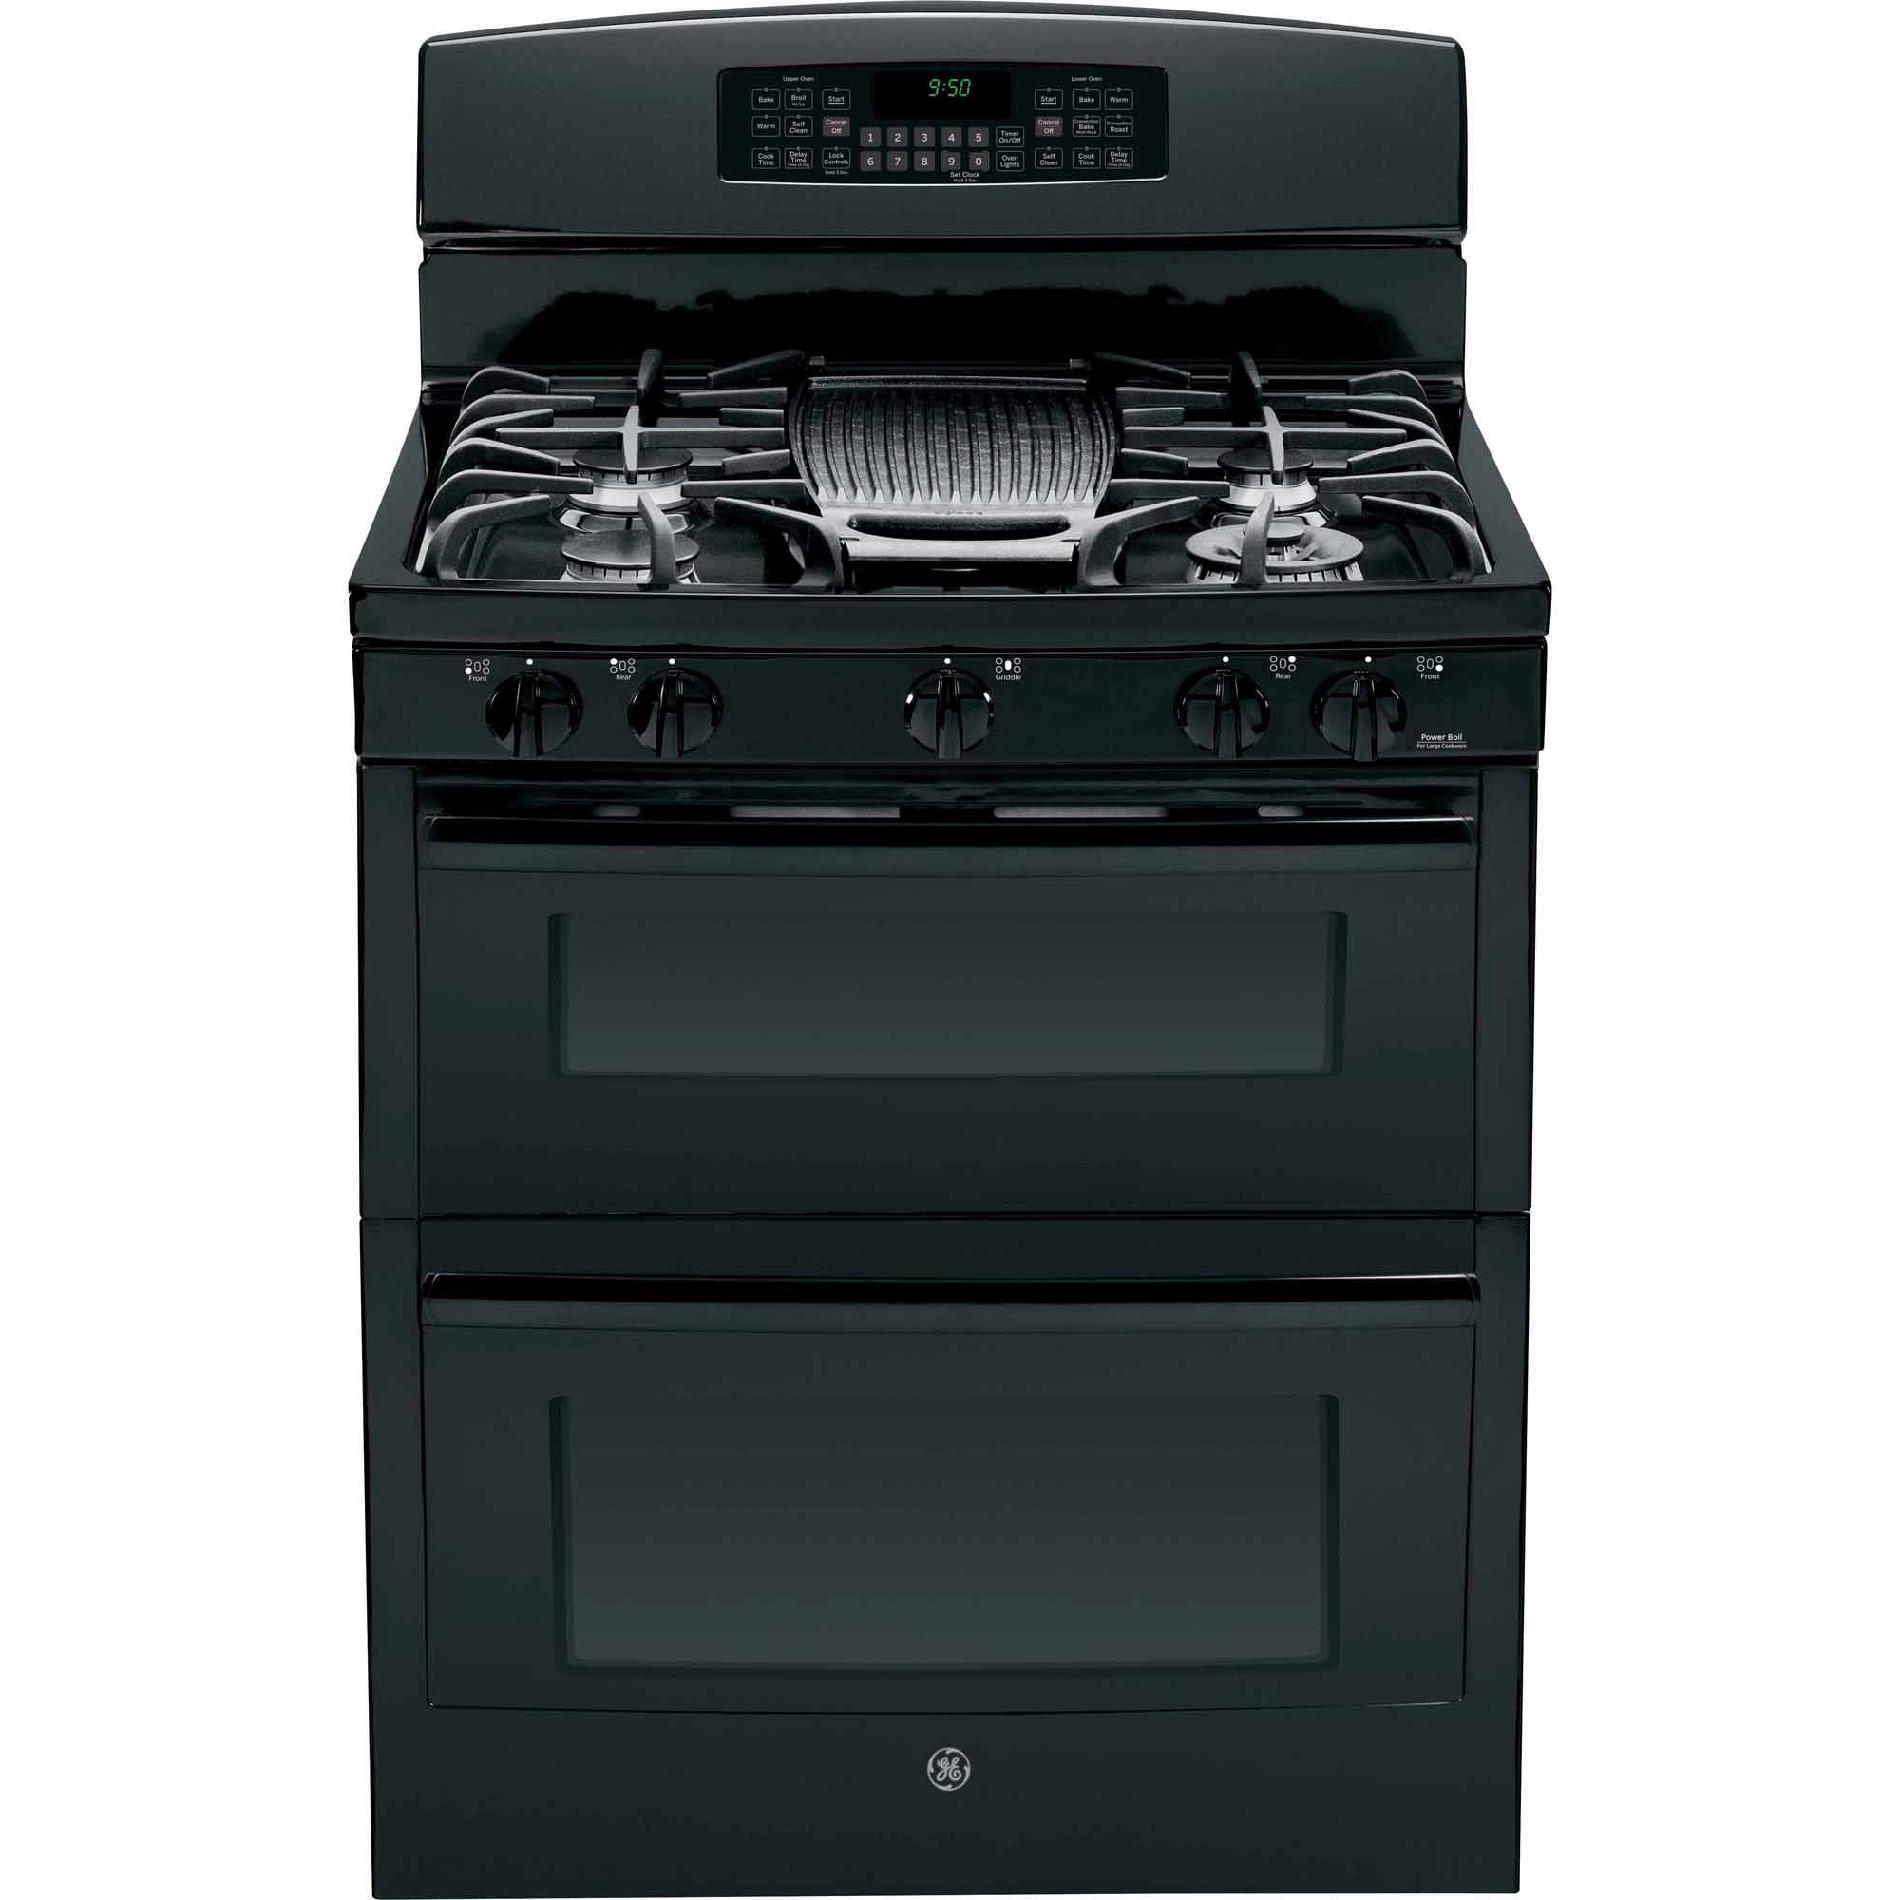 GE Profile 6.8 cu. ft. Double-Oven Gas Range w/ Convection - Black